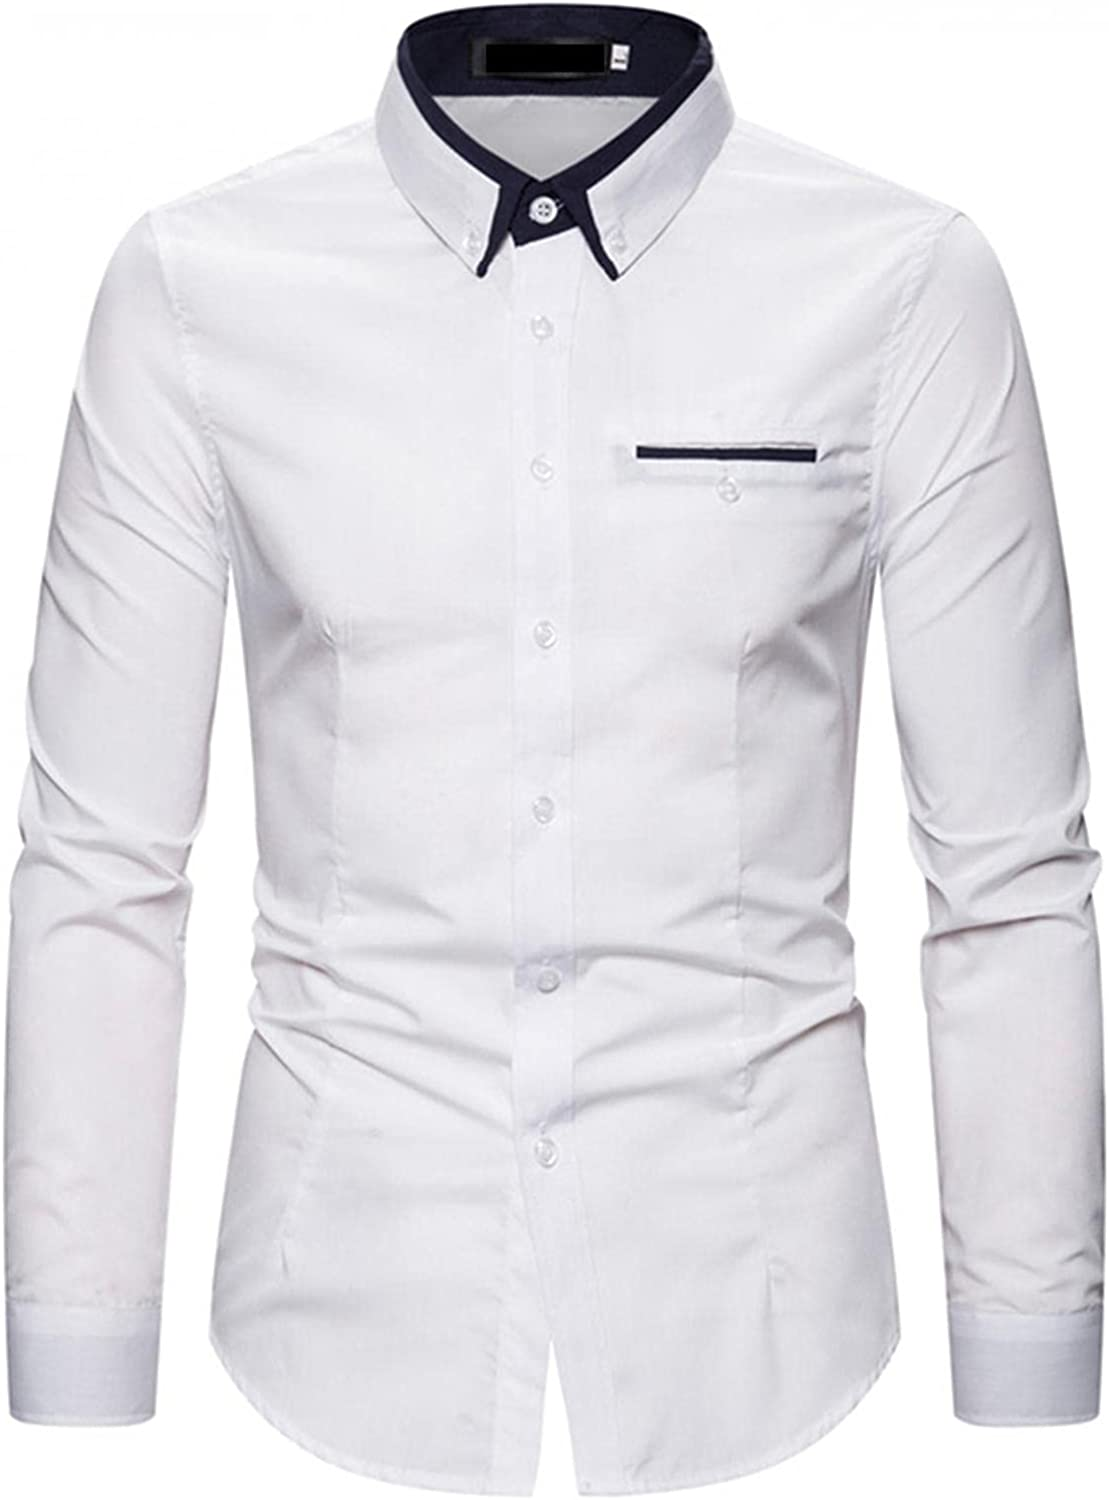 KEEYO Mens Casual Dress Shirts Wrinkle Free Regular Fit Long Sleeve Business Butto Down Cotton Work Shirts